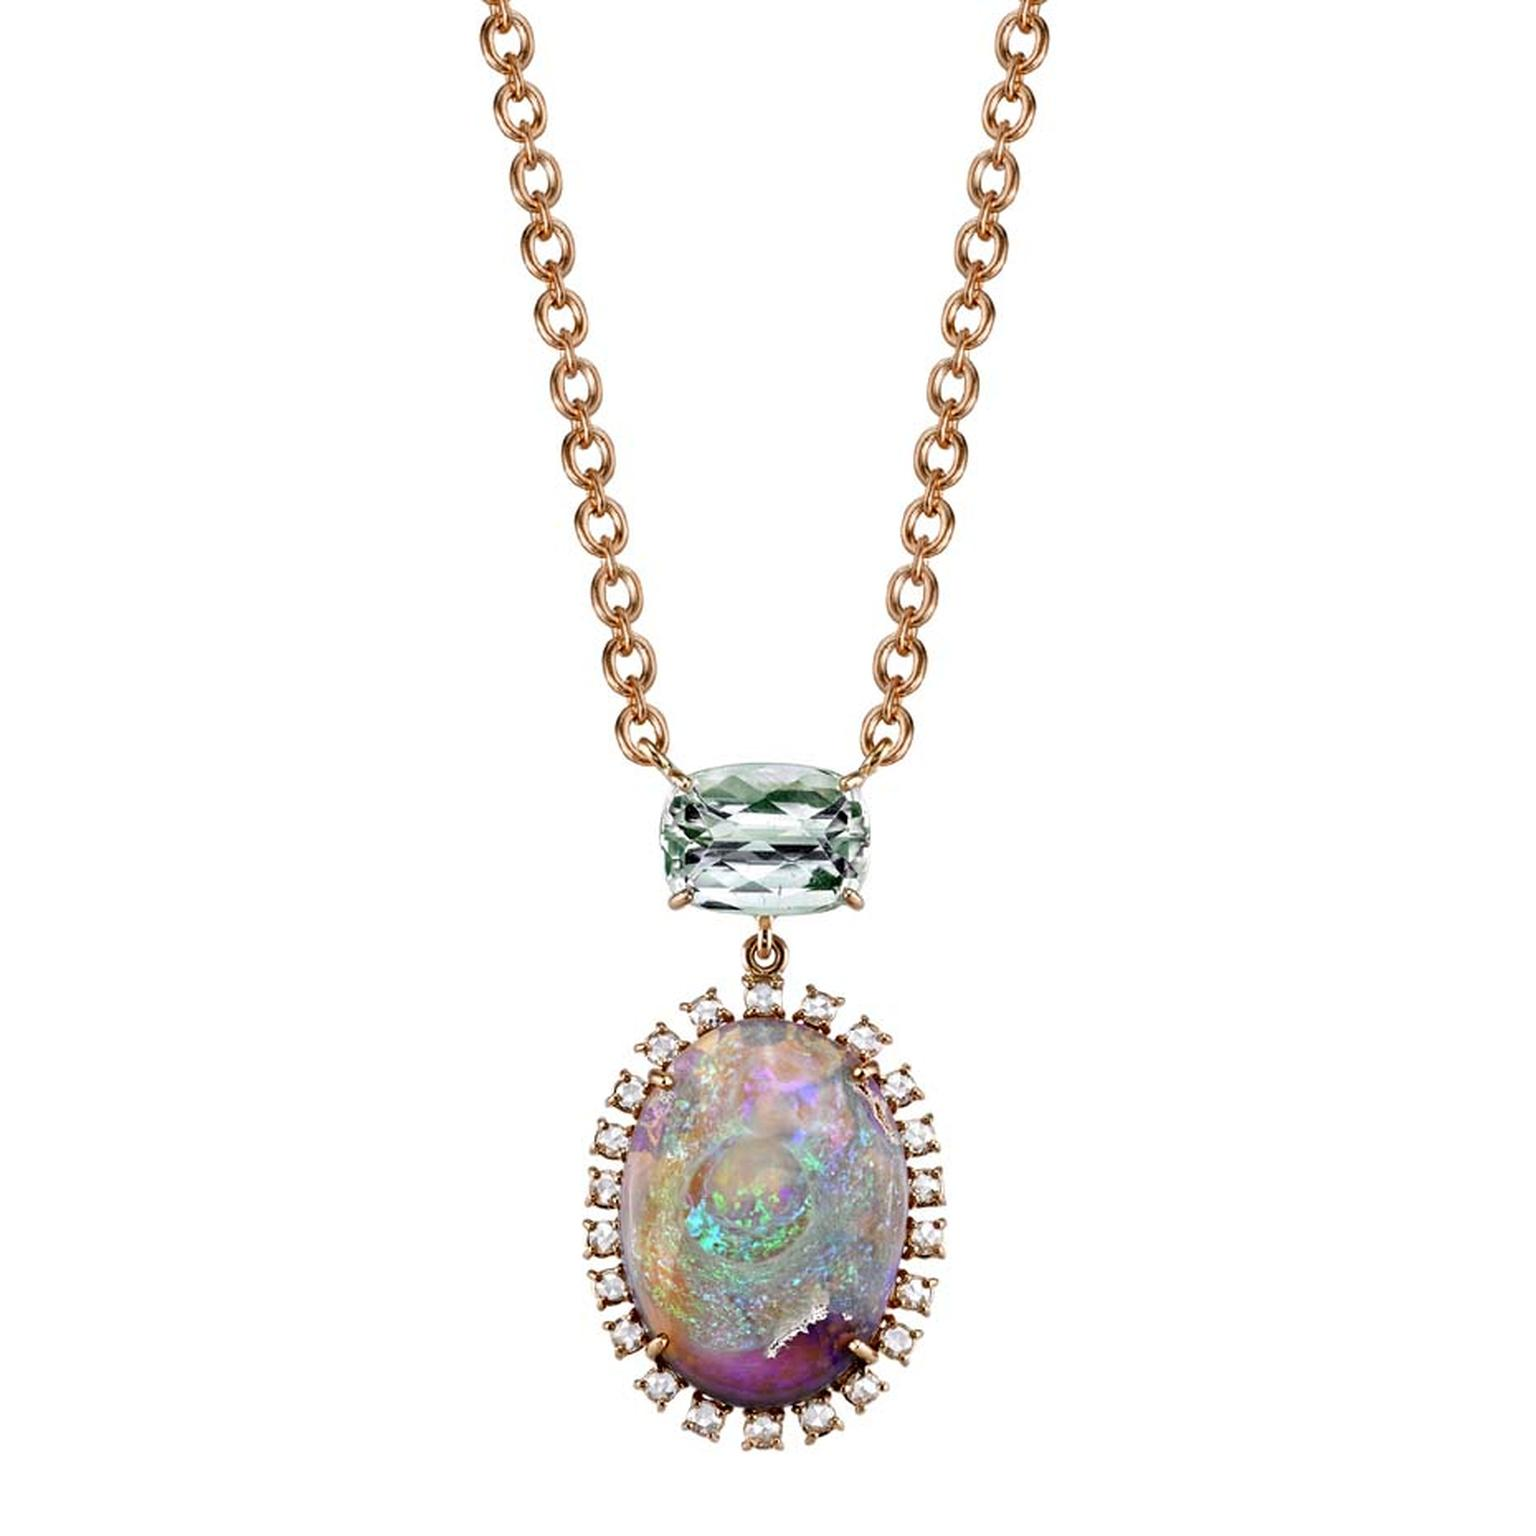 Irene Neuwirth rose gold one-of-a-kind necklace with green tourmaline, Lightning Ridge opal and diamonds ($9,770).